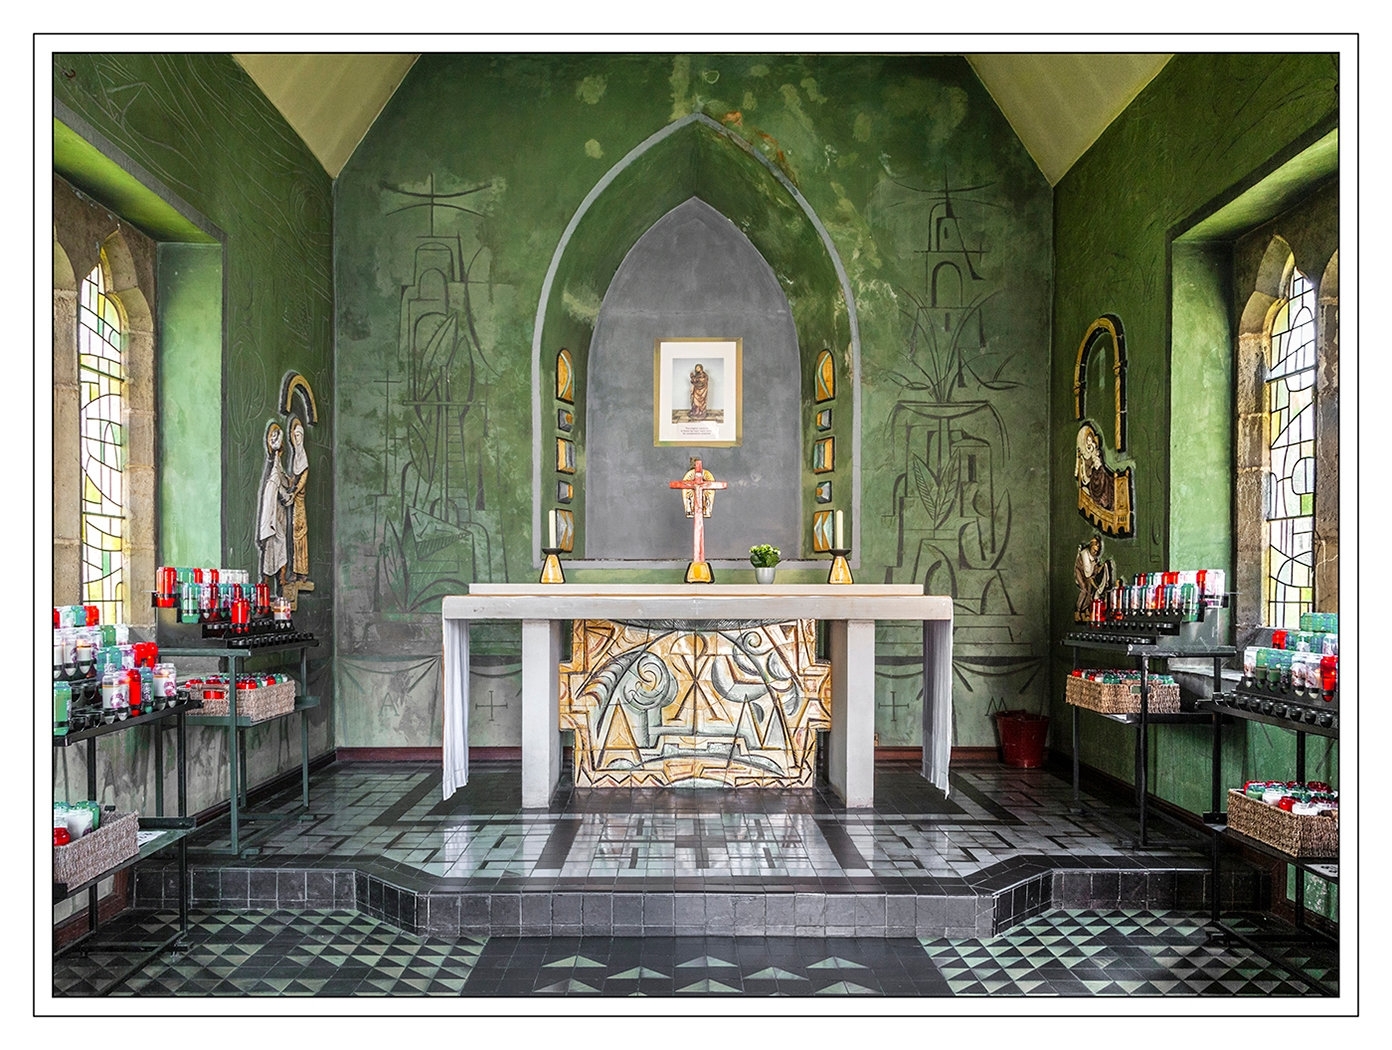 3rd Place - St Anne's Chapel at Carmalite the Friars Aylesford by Mick Porter